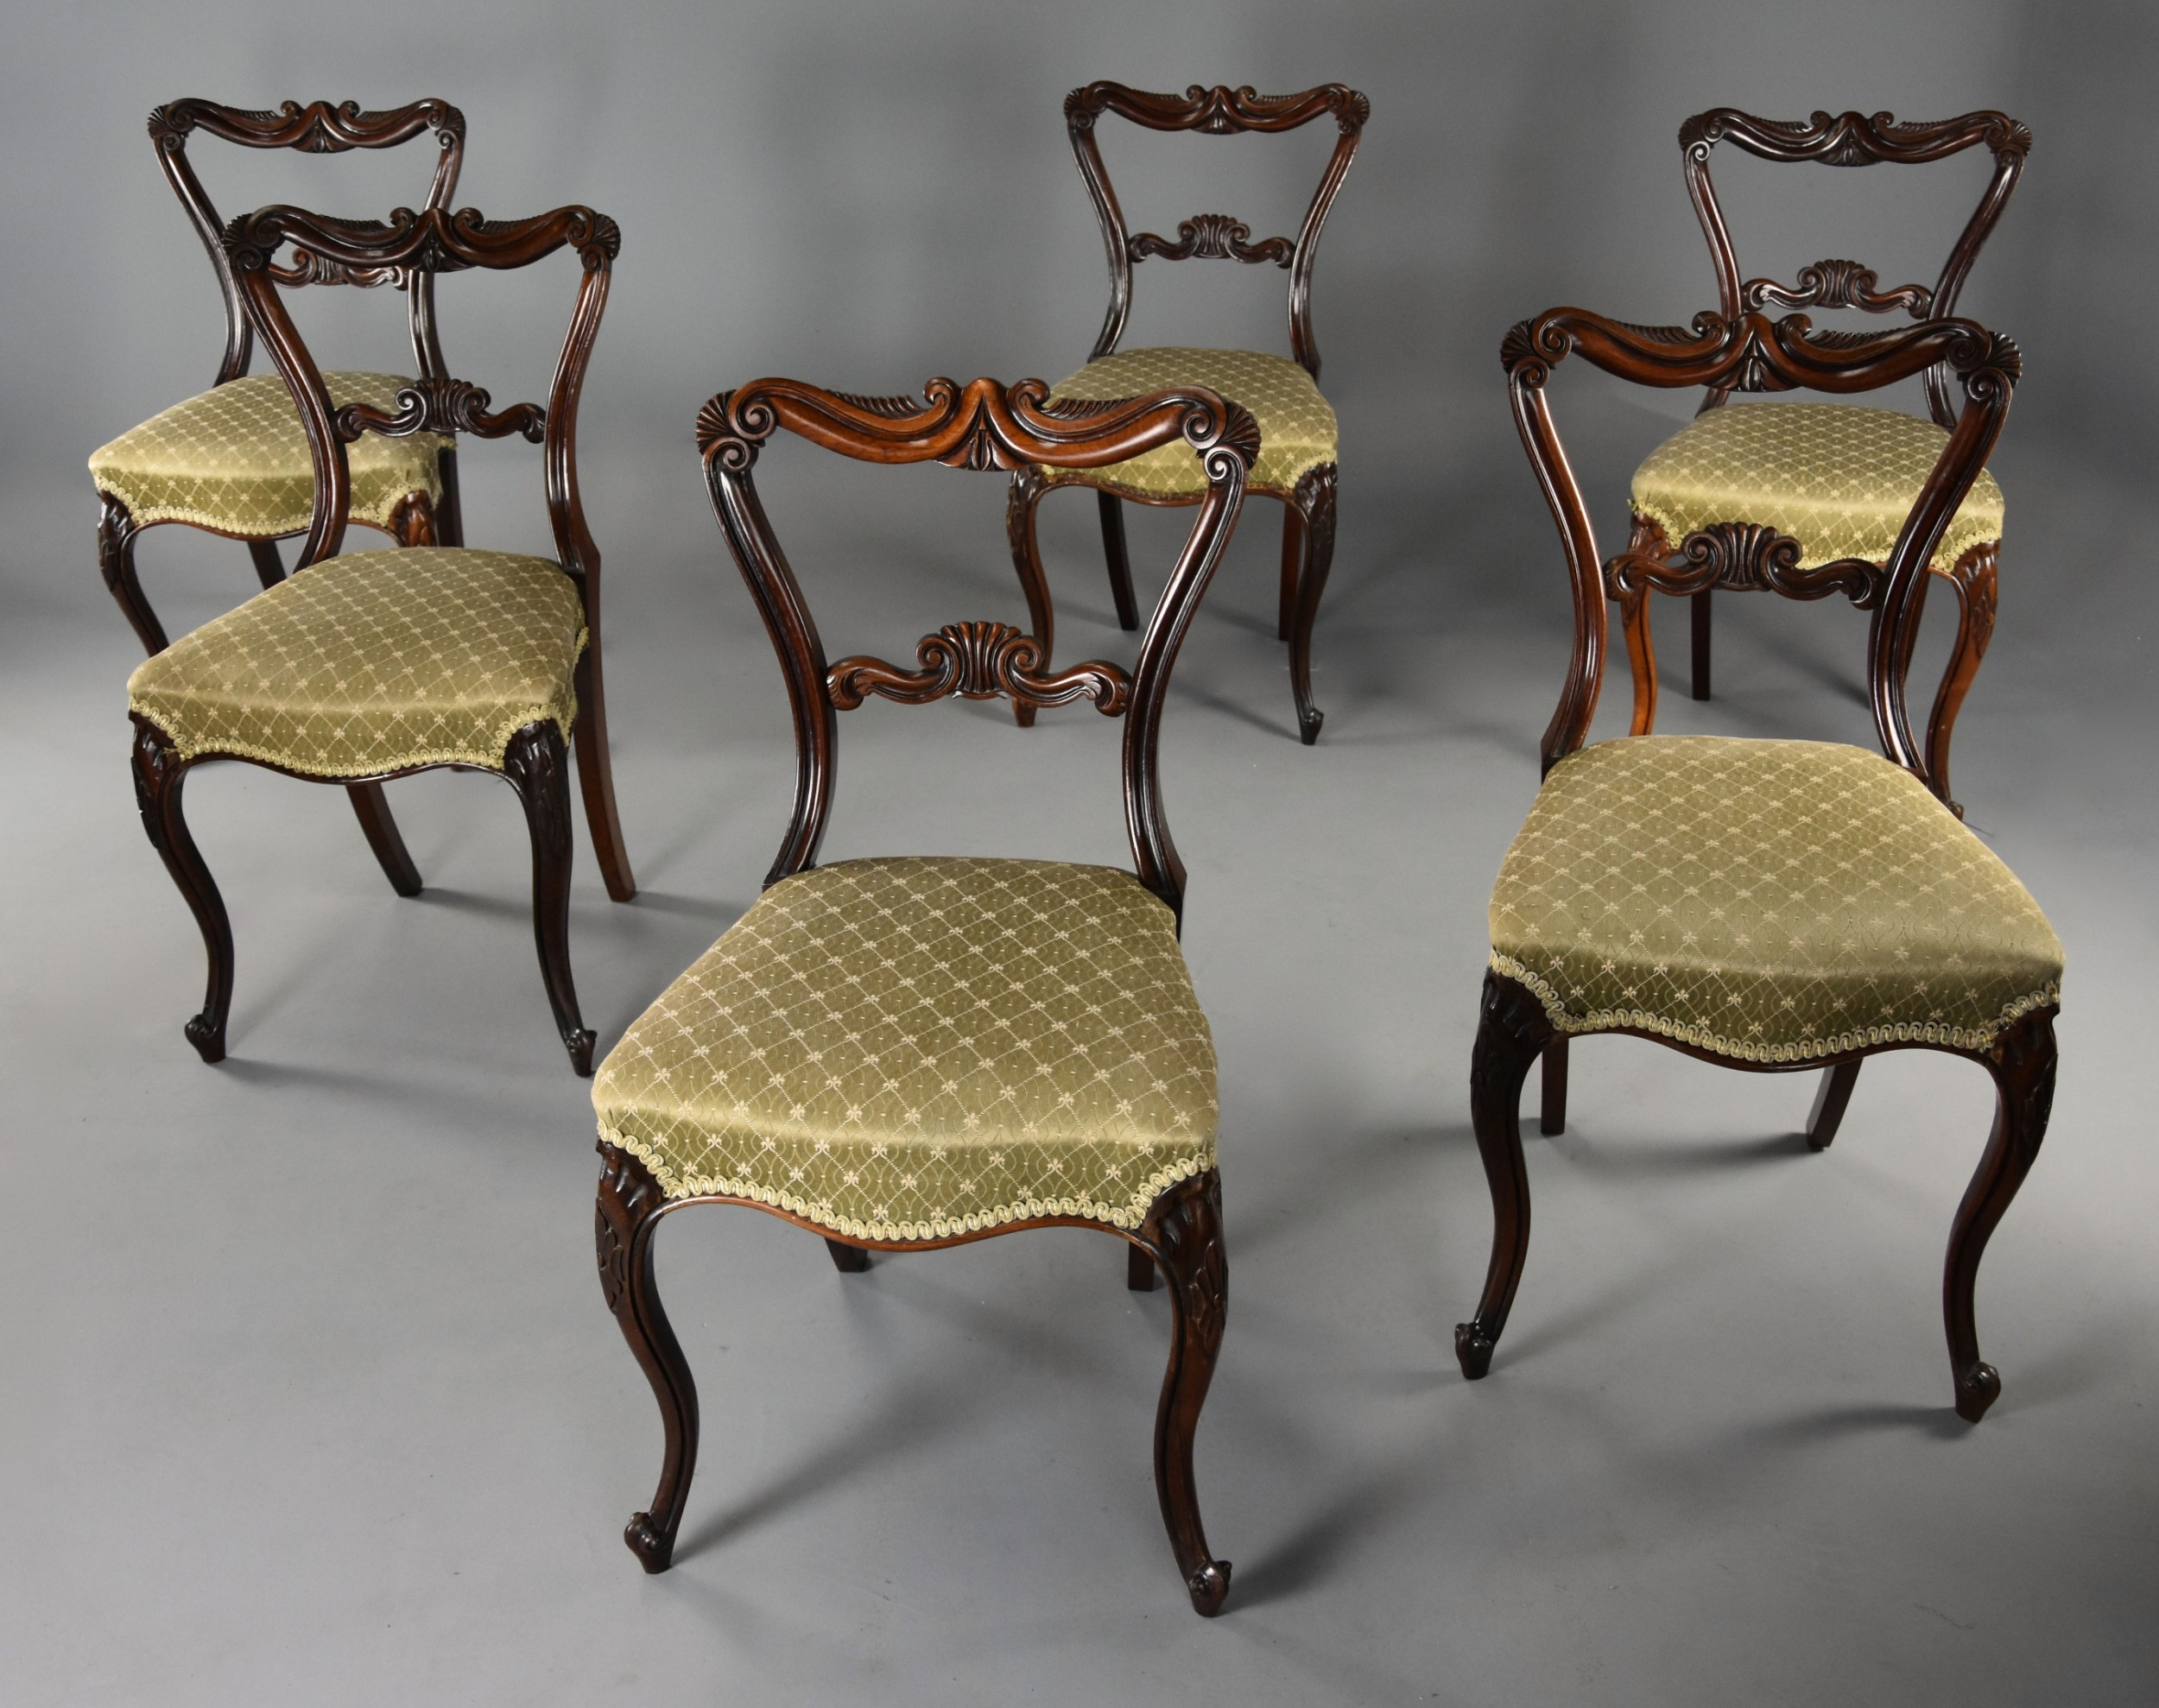 fine quality earlymid 19th century set of six rosewood dining chairs in the manner of gillows